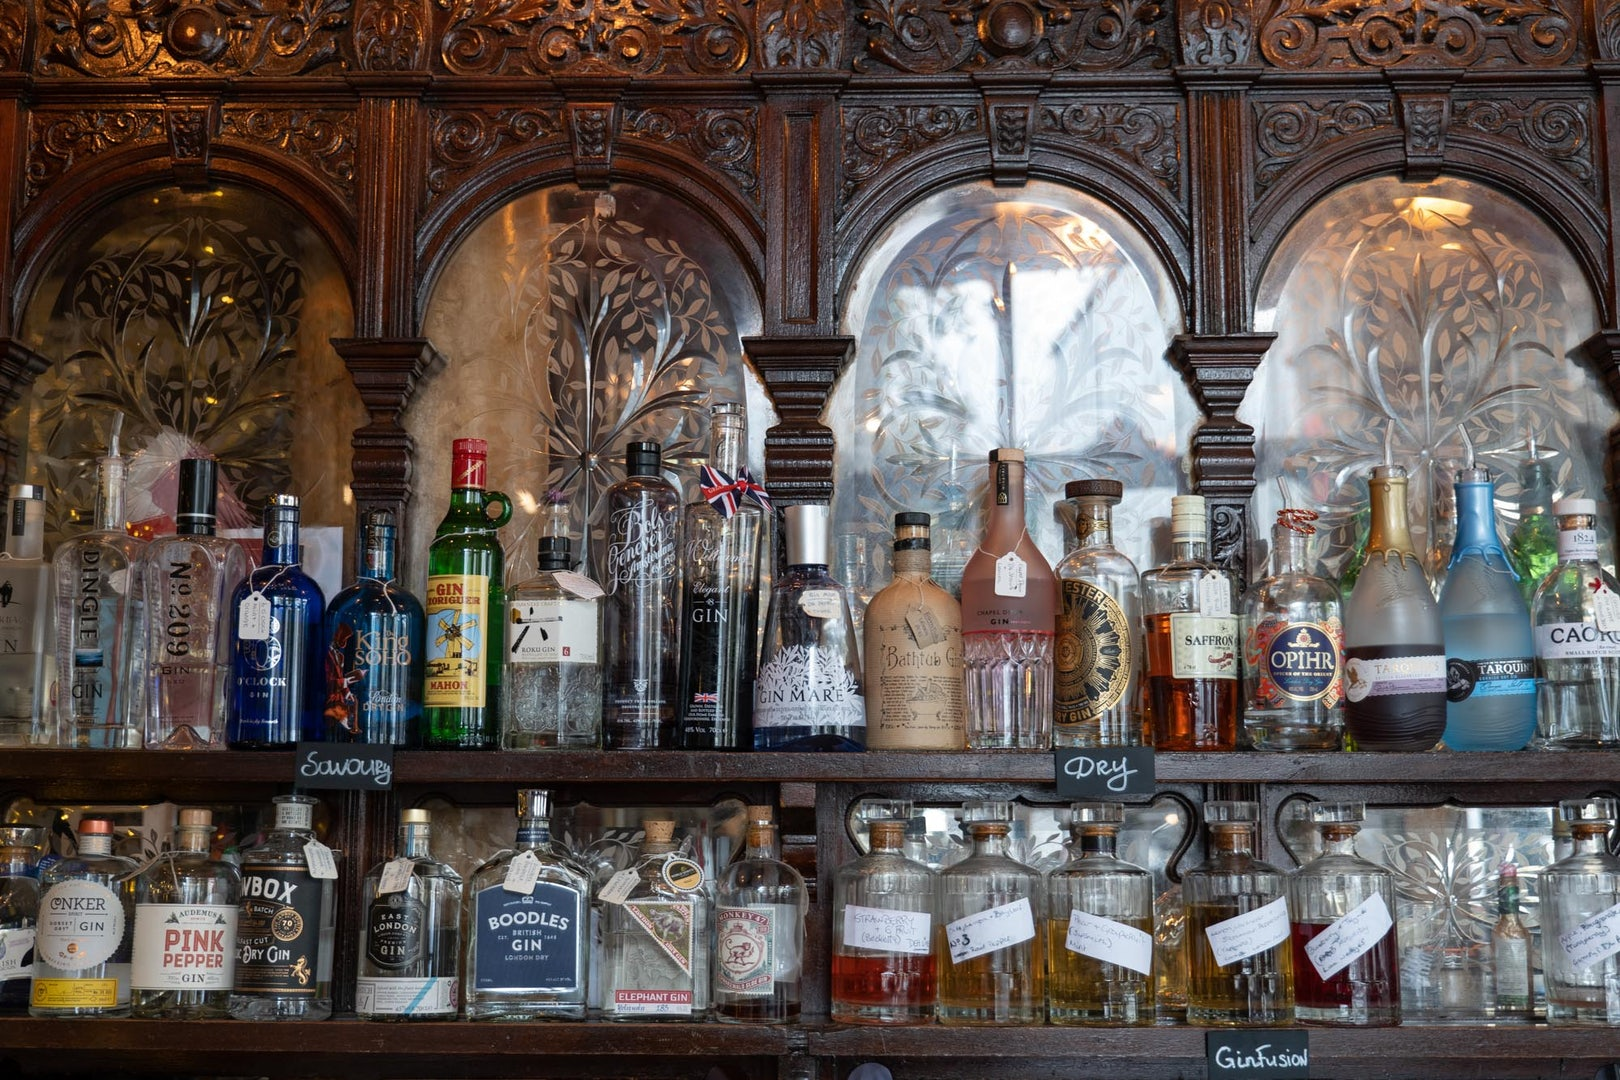 bottles of quality gin at the Viaduct Tavern